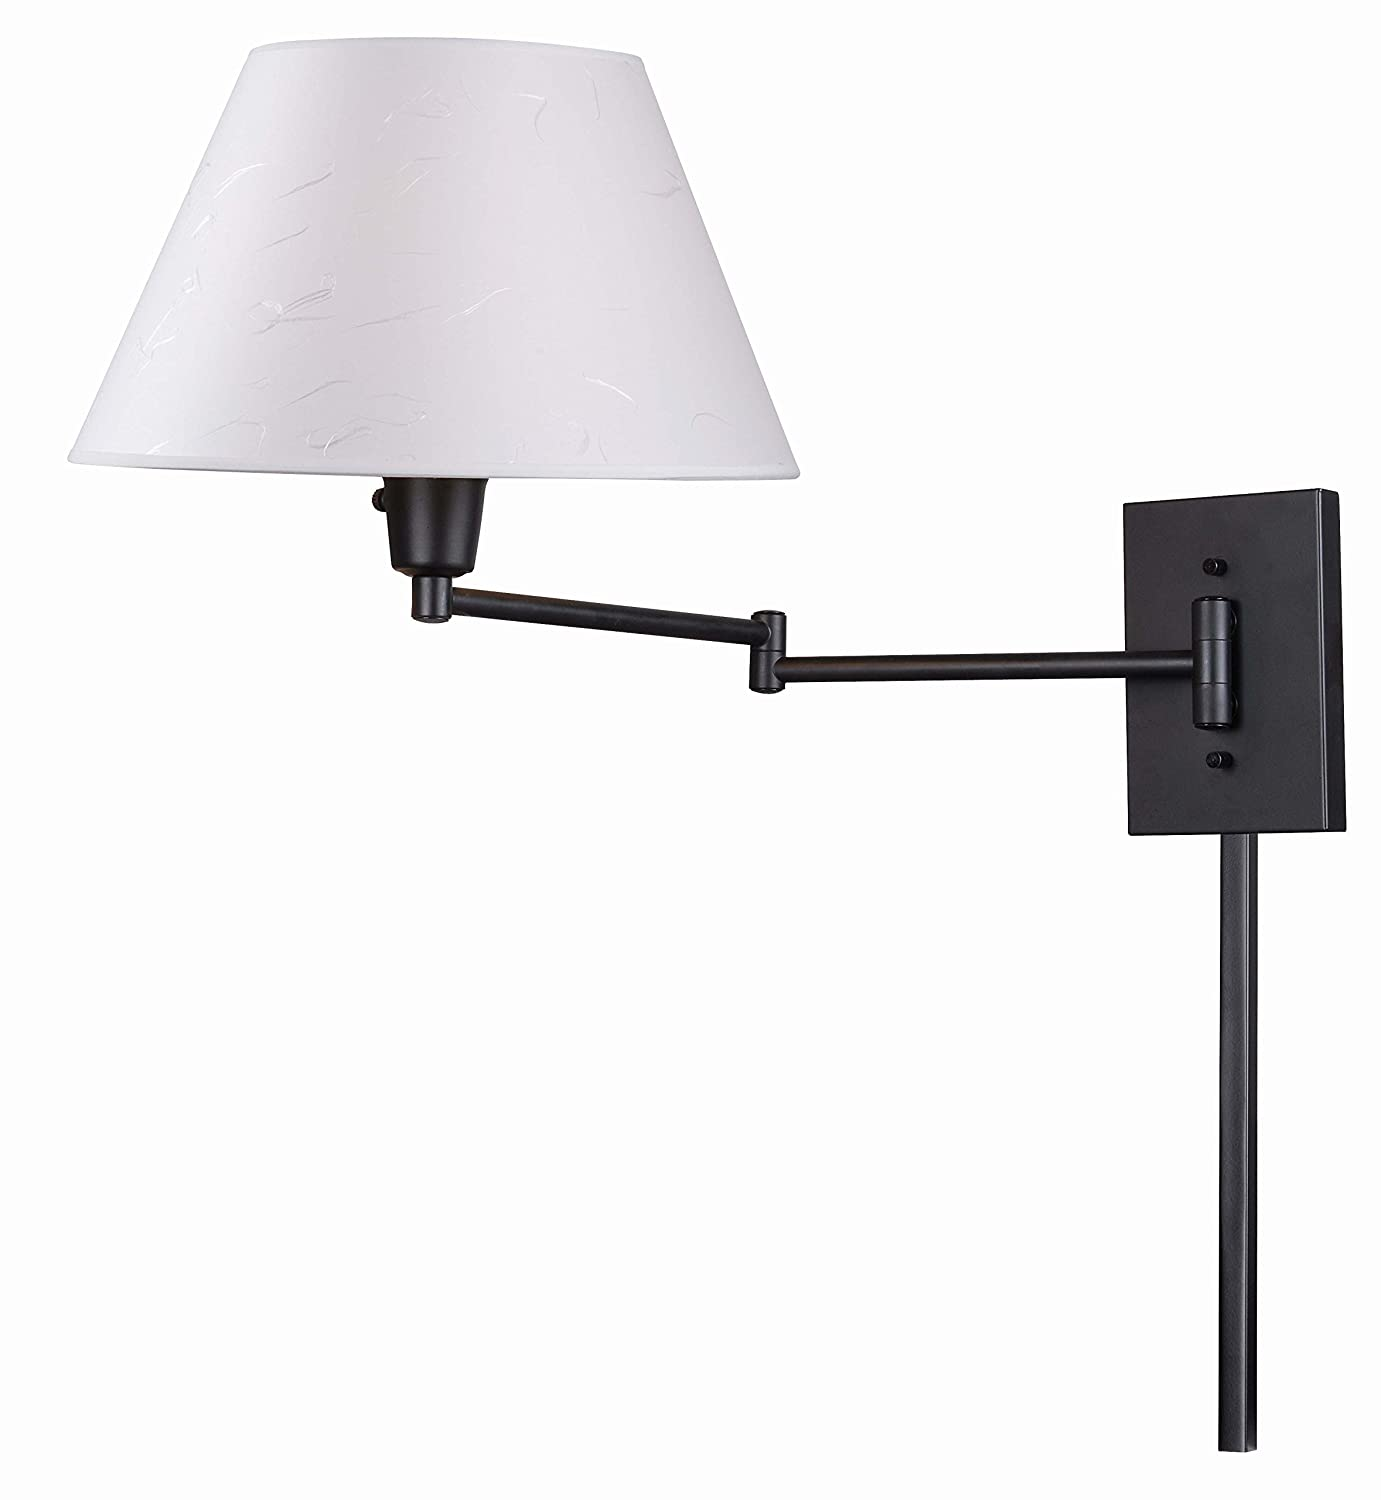 Kenroy Home 30110BS Simplicity Wall-Mounted 150-Watt Swing-Arm Lamp,  Brushed Steel - Wall Sconces - Amazon.com - Kenroy Home 30110BS Simplicity Wall-Mounted 150-Watt Swing-Arm